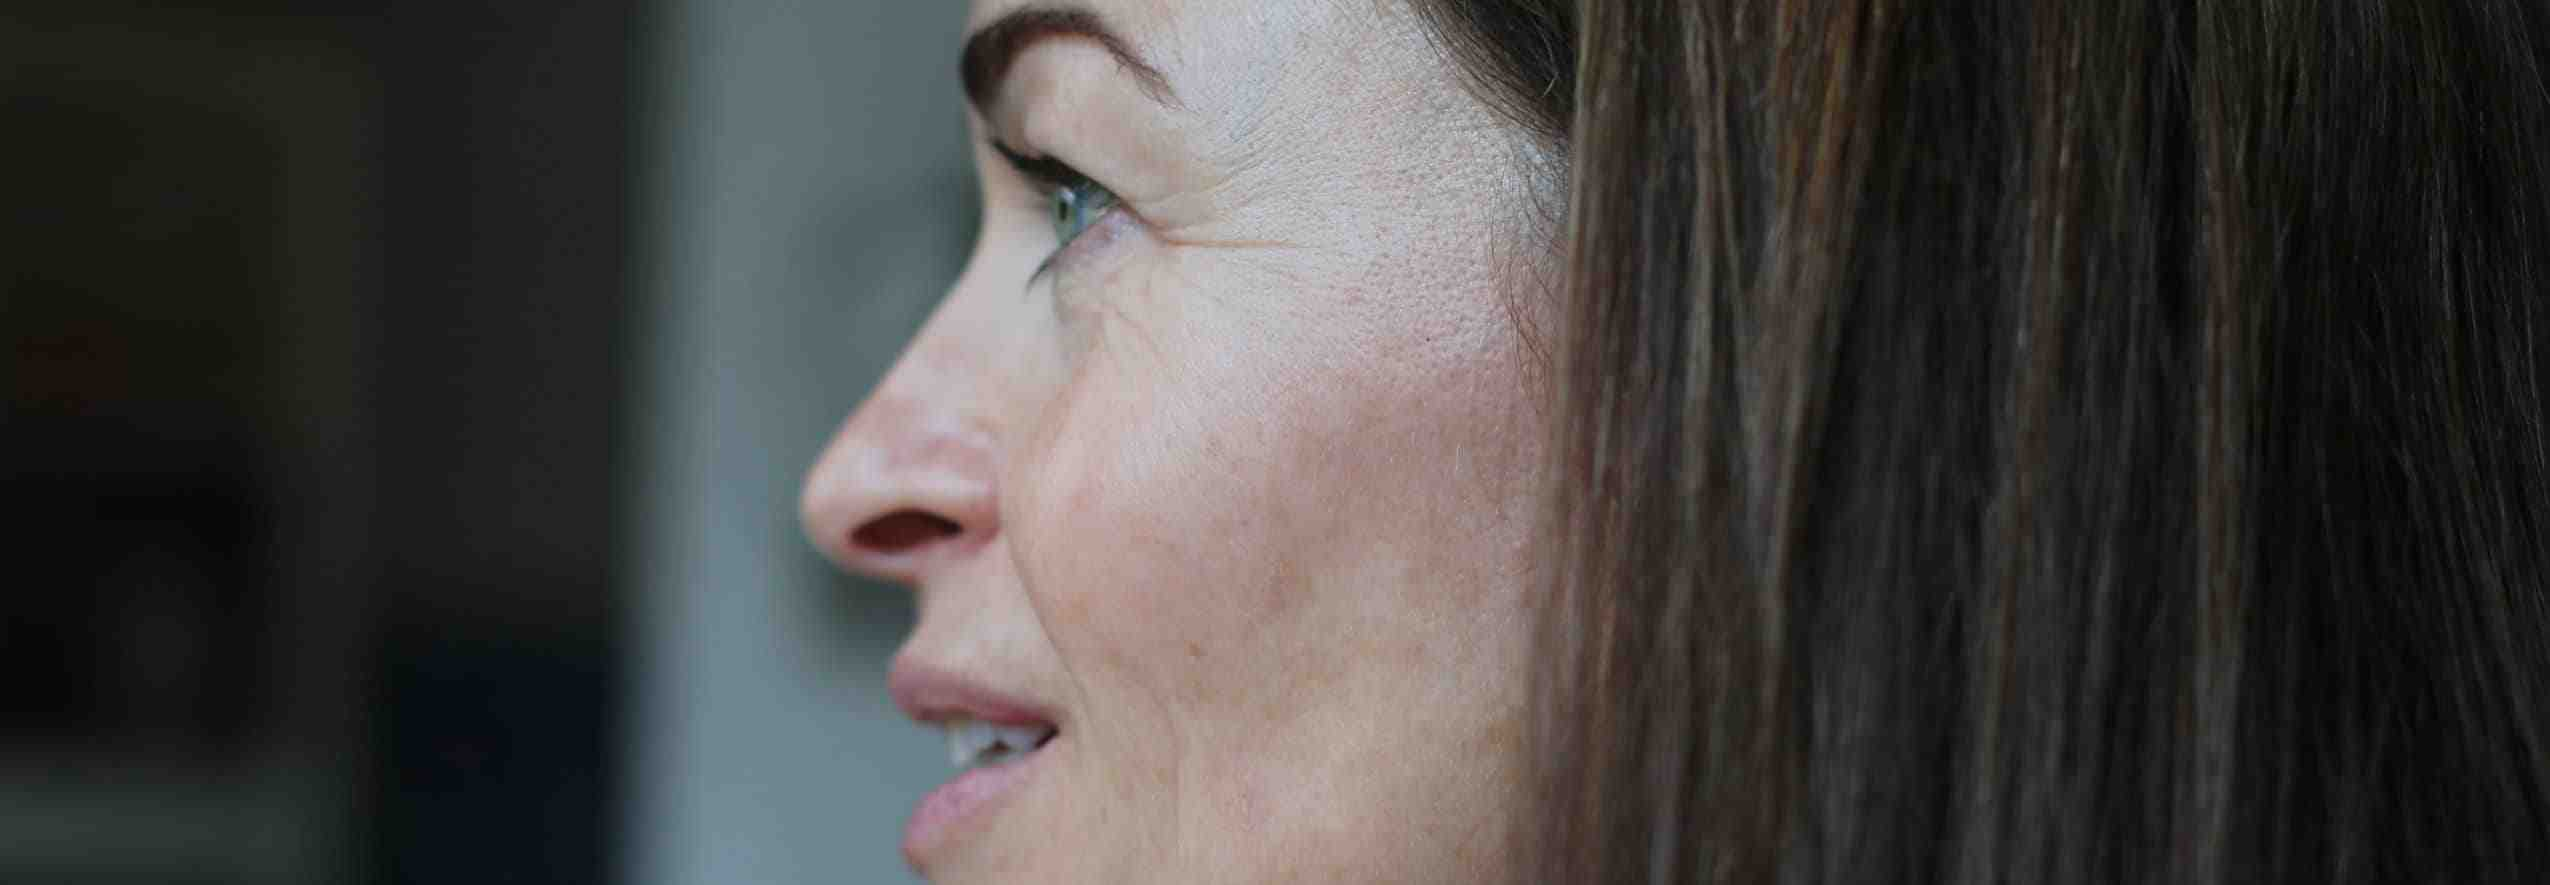 Lady face with brown age spots